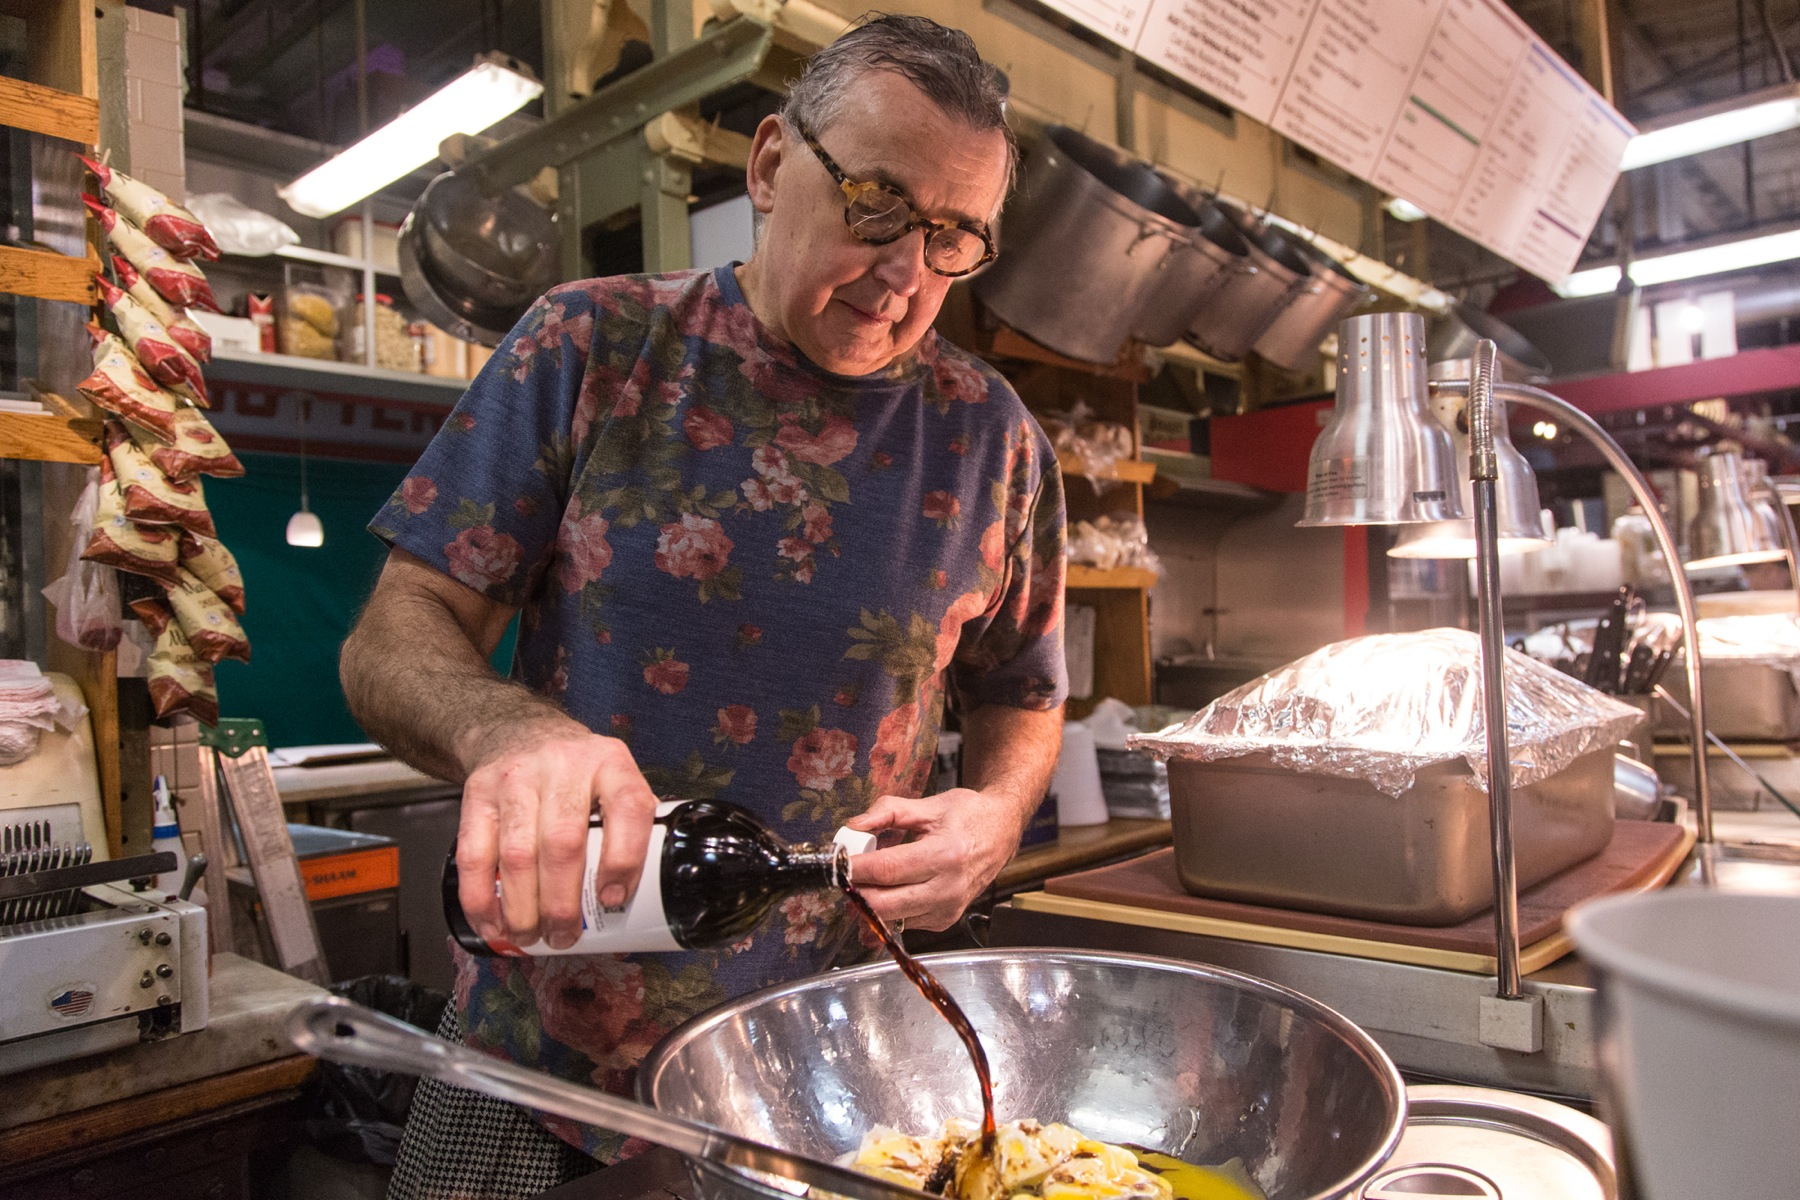 Around 5:30 a.m., co-owner Andy Wash joins the preparations, beginning his day with his four-cheese kugel, which is a sweet, cheese, noodle dish which has its roots in old Jewish cooking.